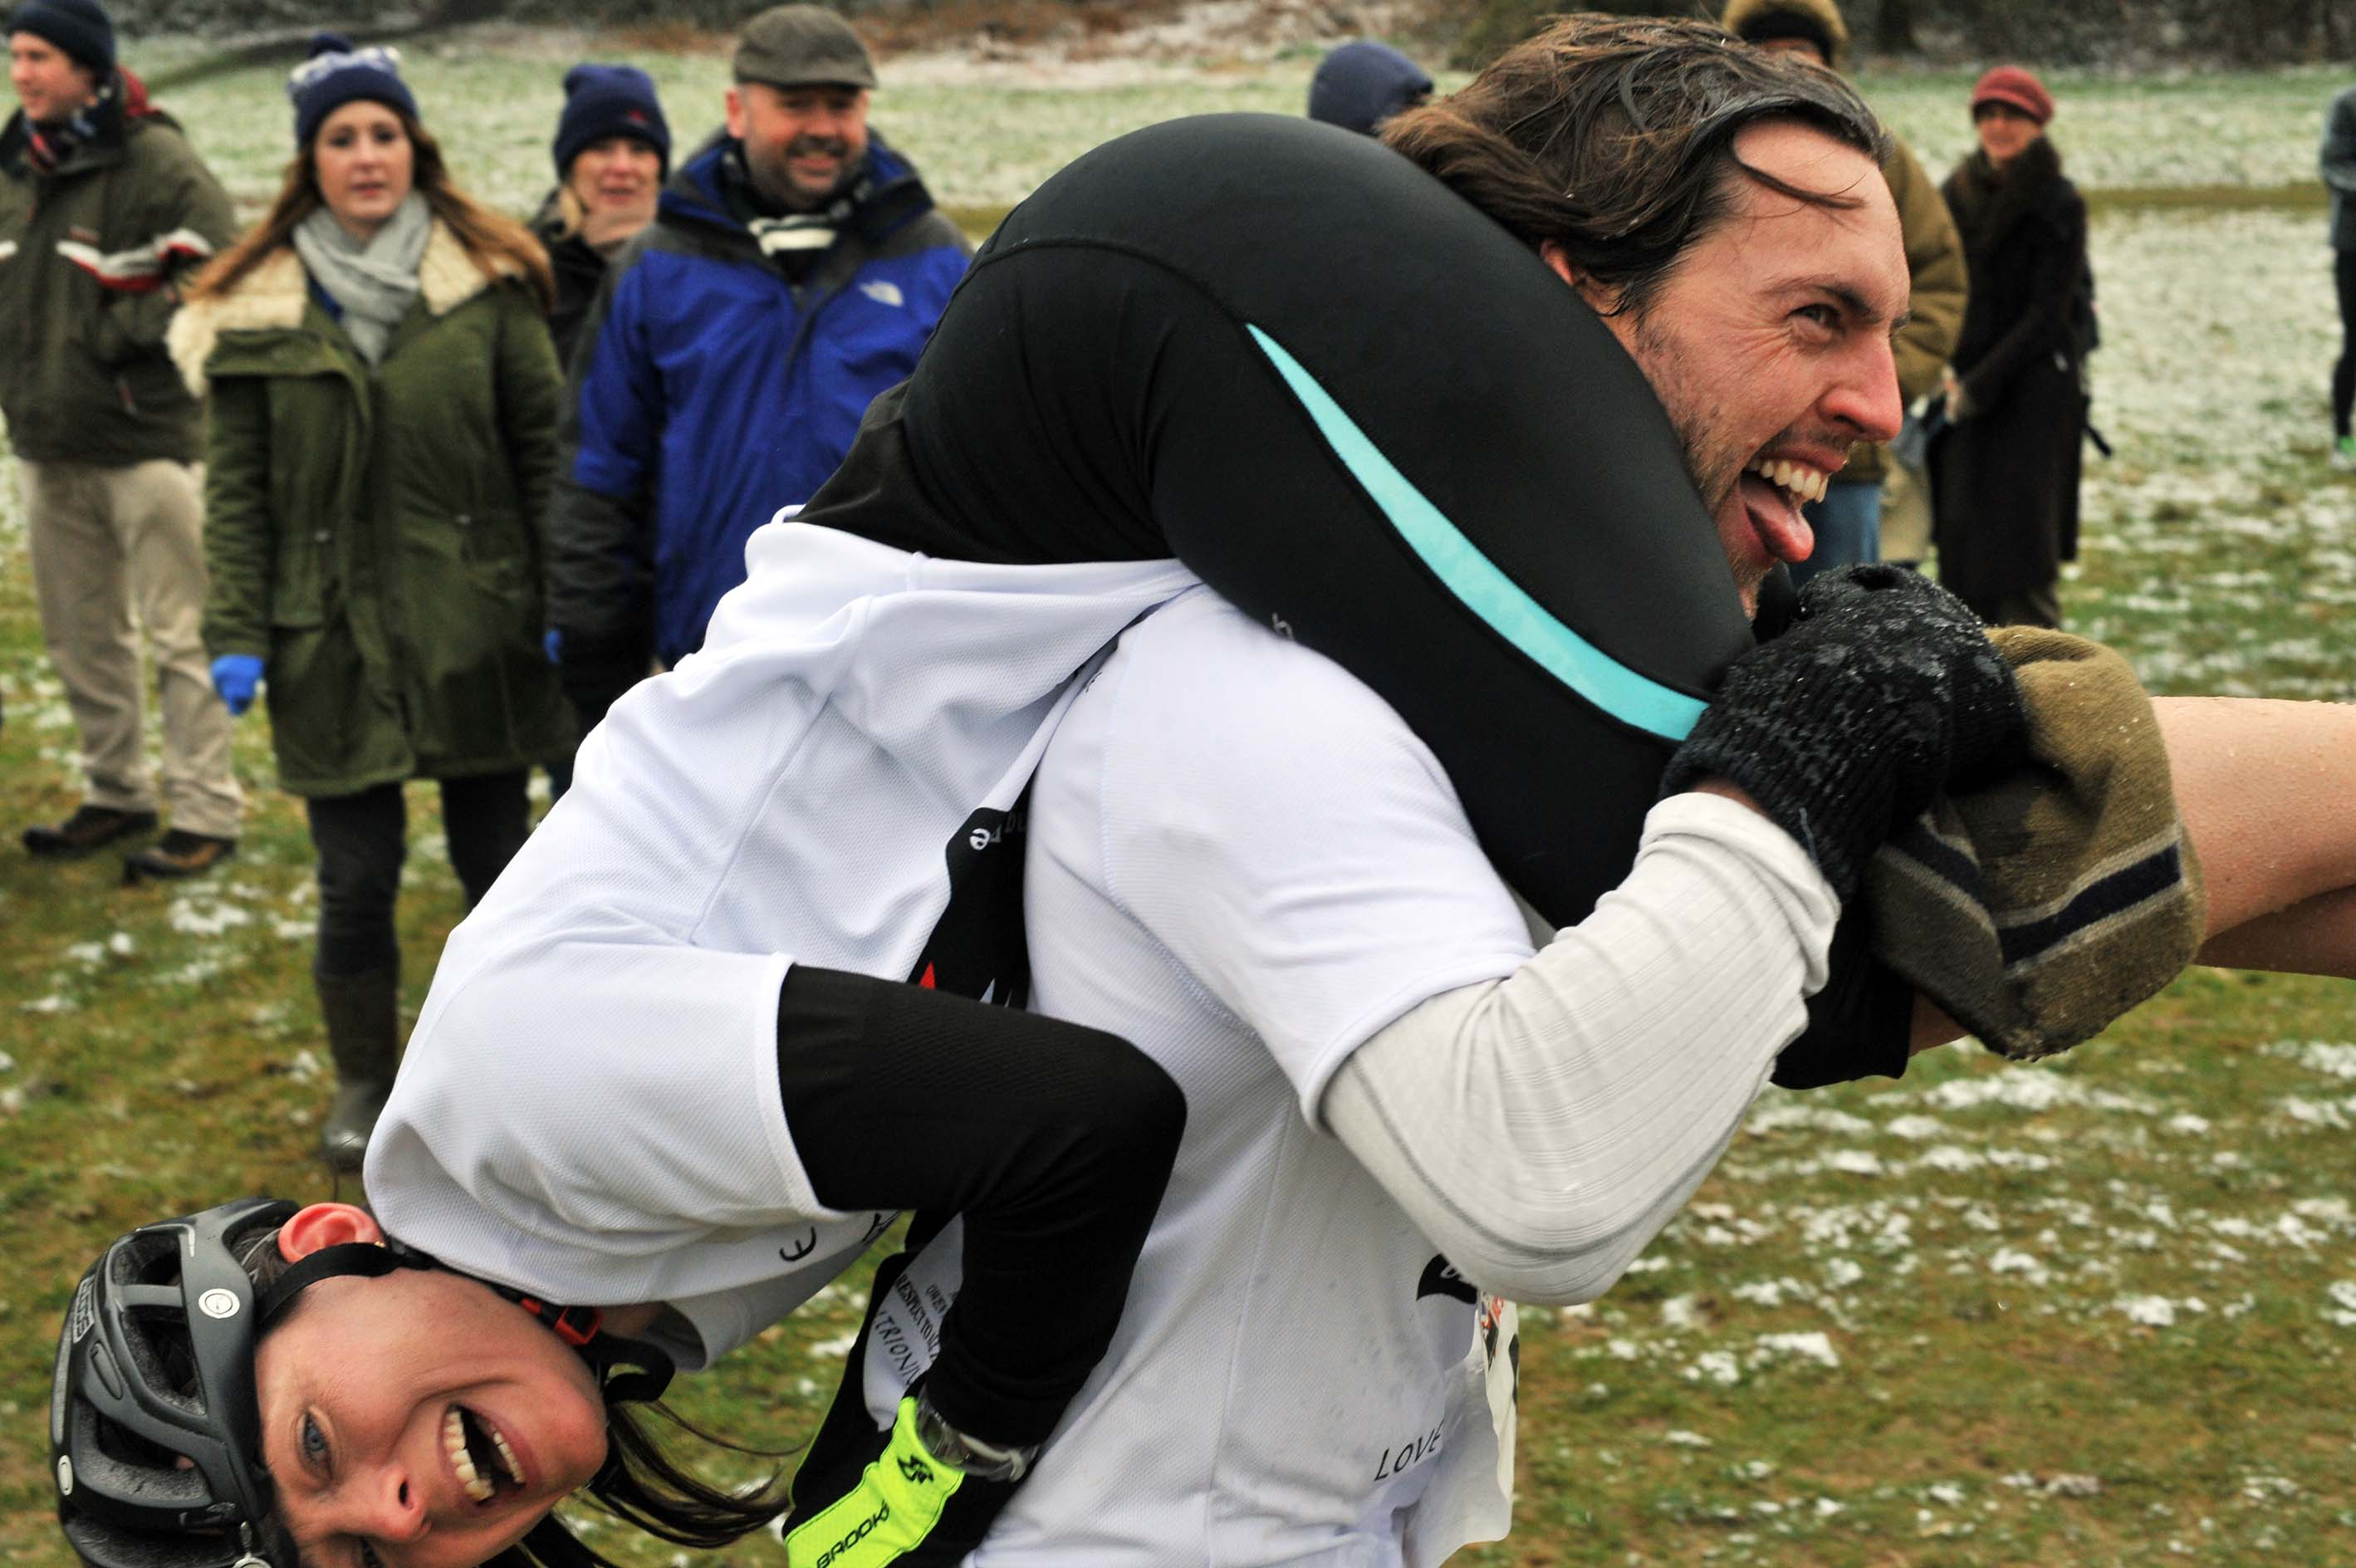 The UK Wife Carrying Championships are a right carry-on